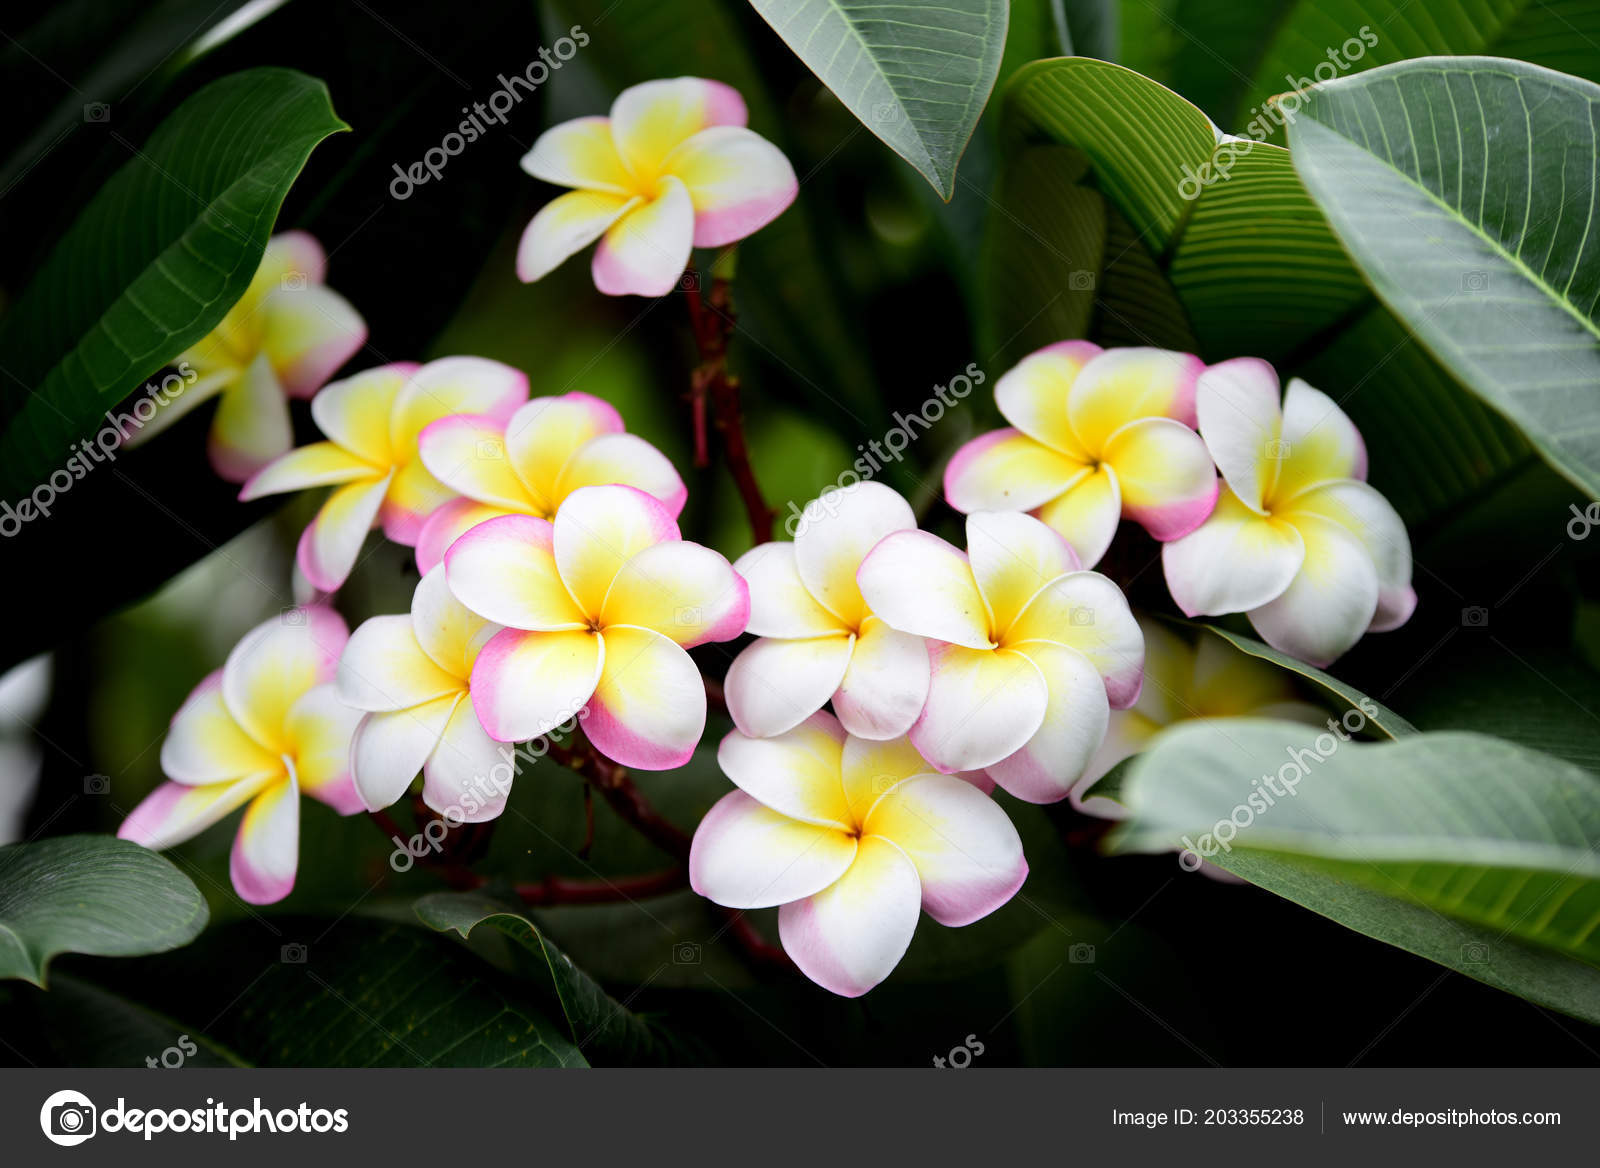 Colorful flowers garden plumeria flower blooming beautiful flowers colorful flowers garden plumeria flower blooming beautiful flowers garden blooming stock photo izmirmasajfo